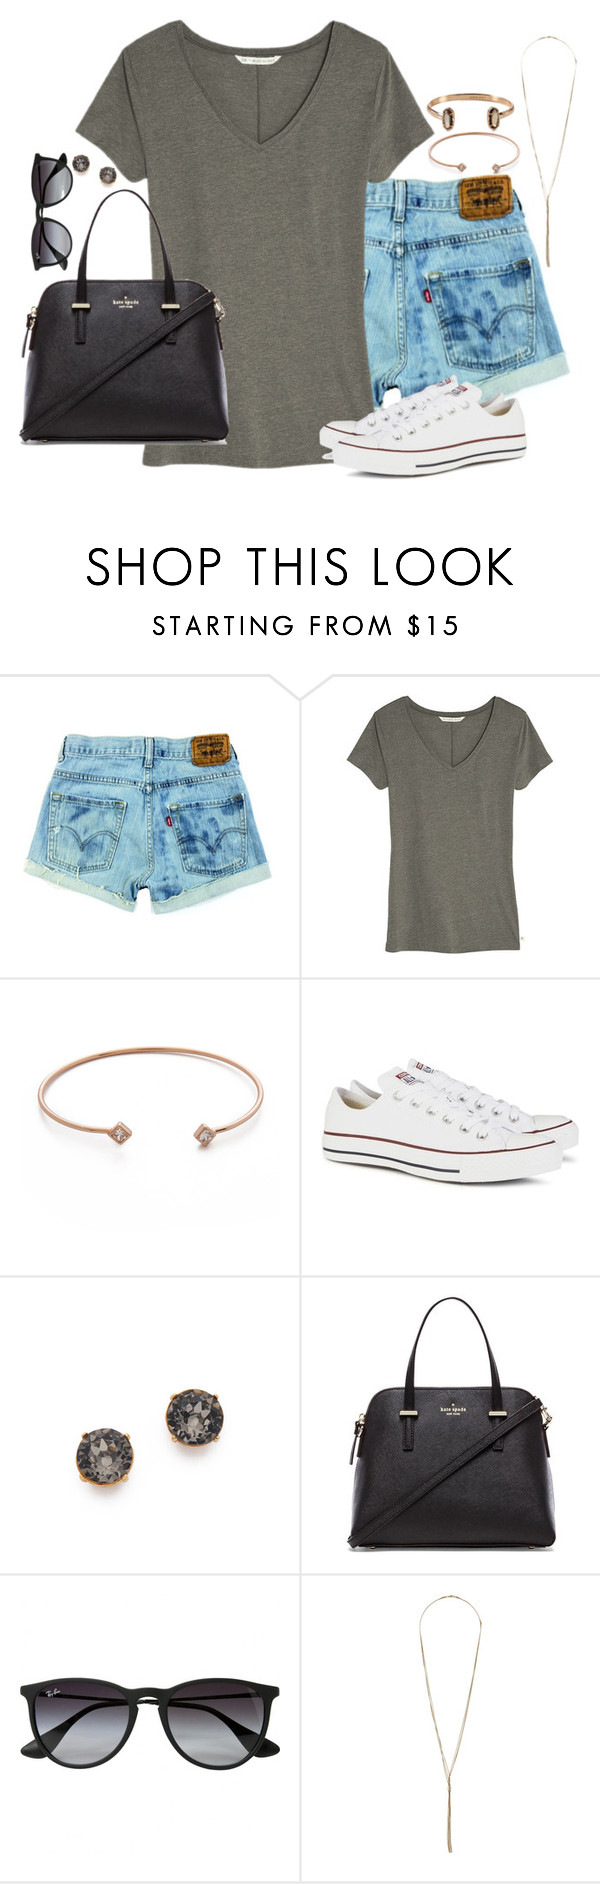 """""""you're the glitter in the dark"""" by preppy-classy ❤ liked on Polyvore featuring Victoria's Secret, Shashi, Converse, Kenneth Jay Lane, Kate Spade, Ray-Ban, Dorothy Perkins and Kendra Scott"""